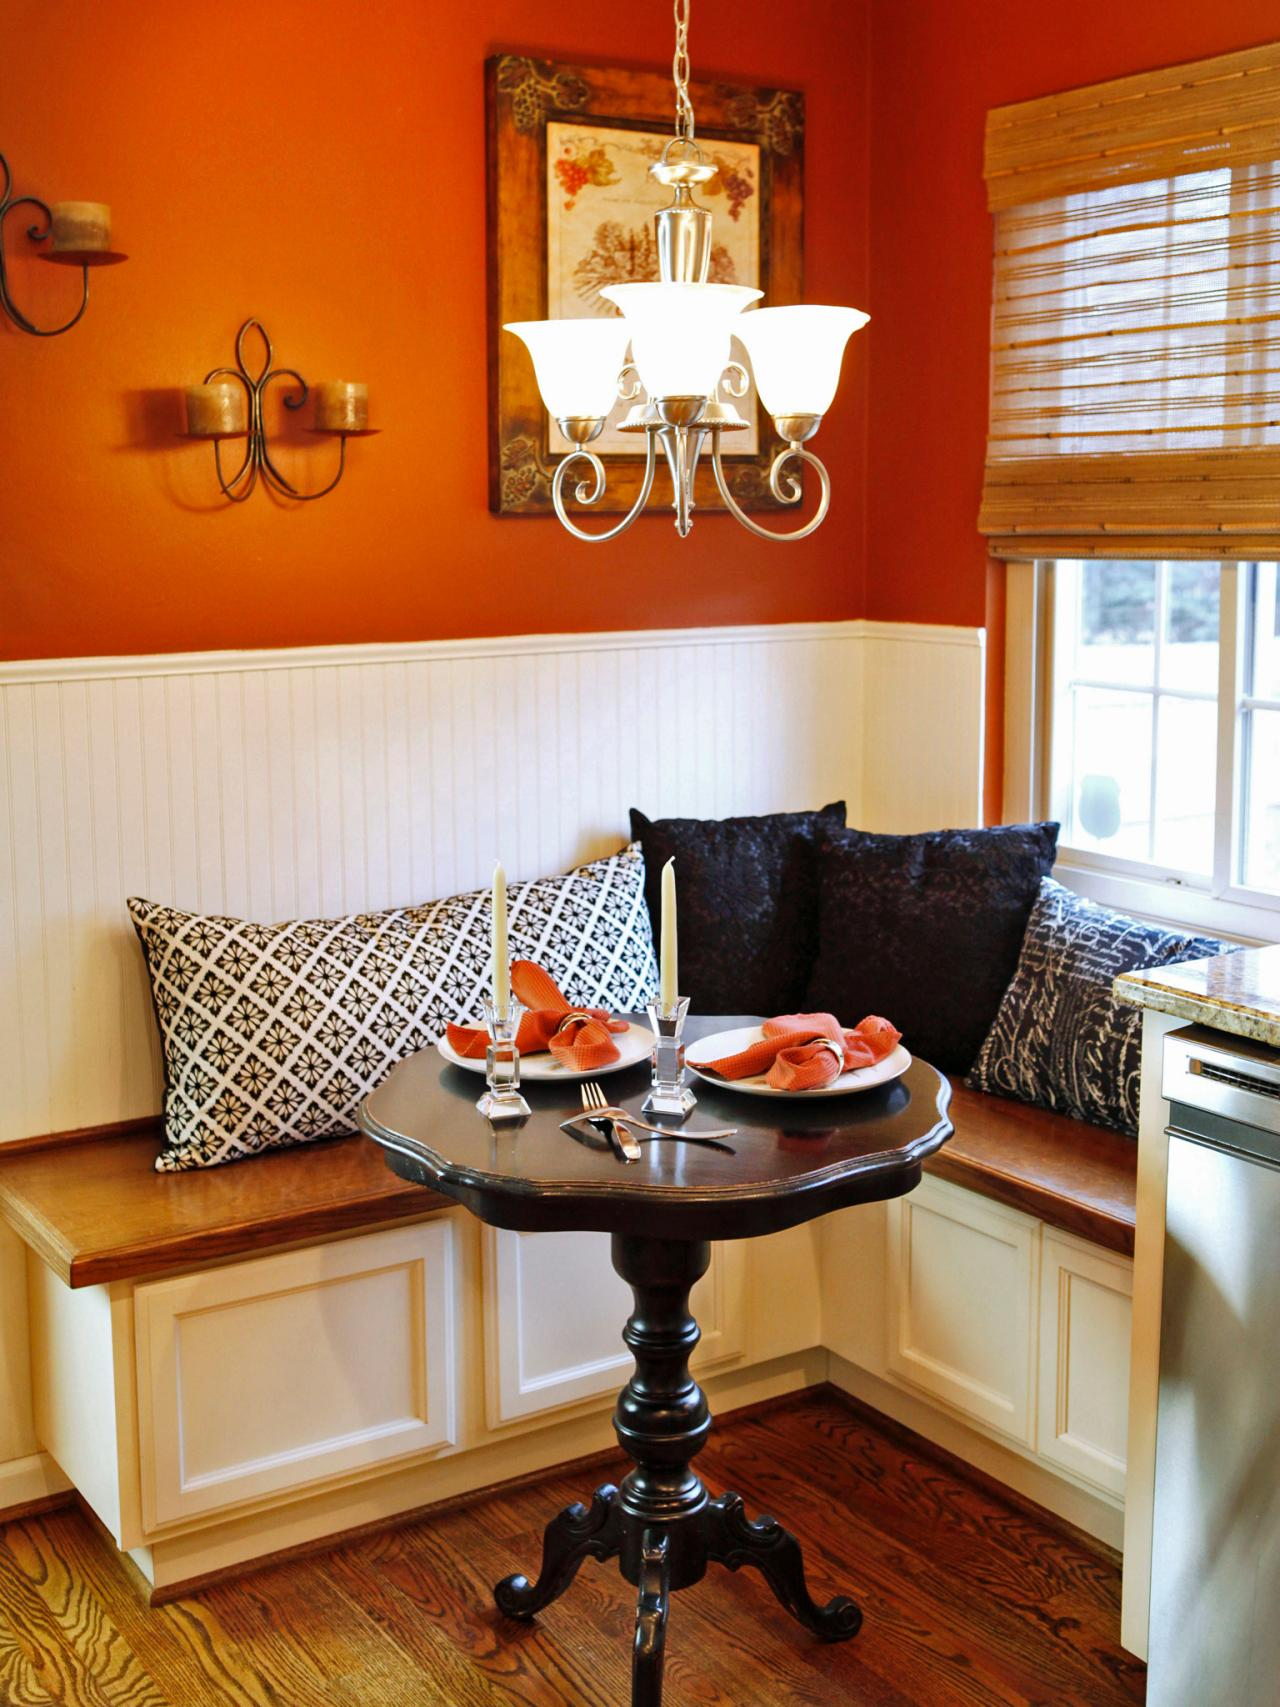 Small Kitchen Table Ideas. Pictures of Small Kitchen Design Ideas From HGTV   HGTV